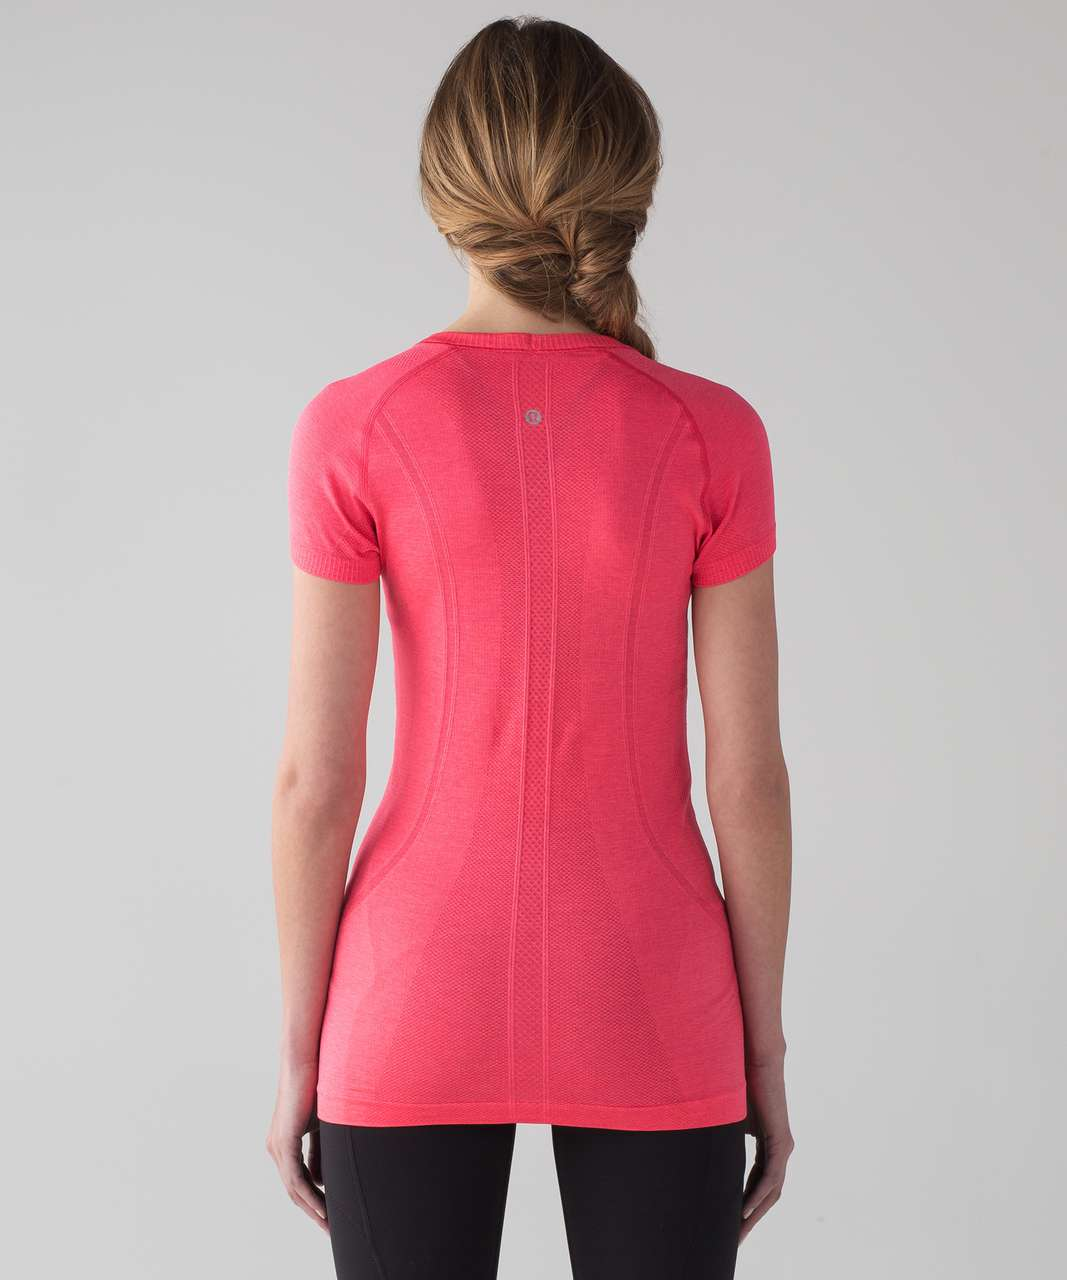 Lululemon Swiftly Tech Short Sleeve Crew - Lip Gloss / Lip Gloss